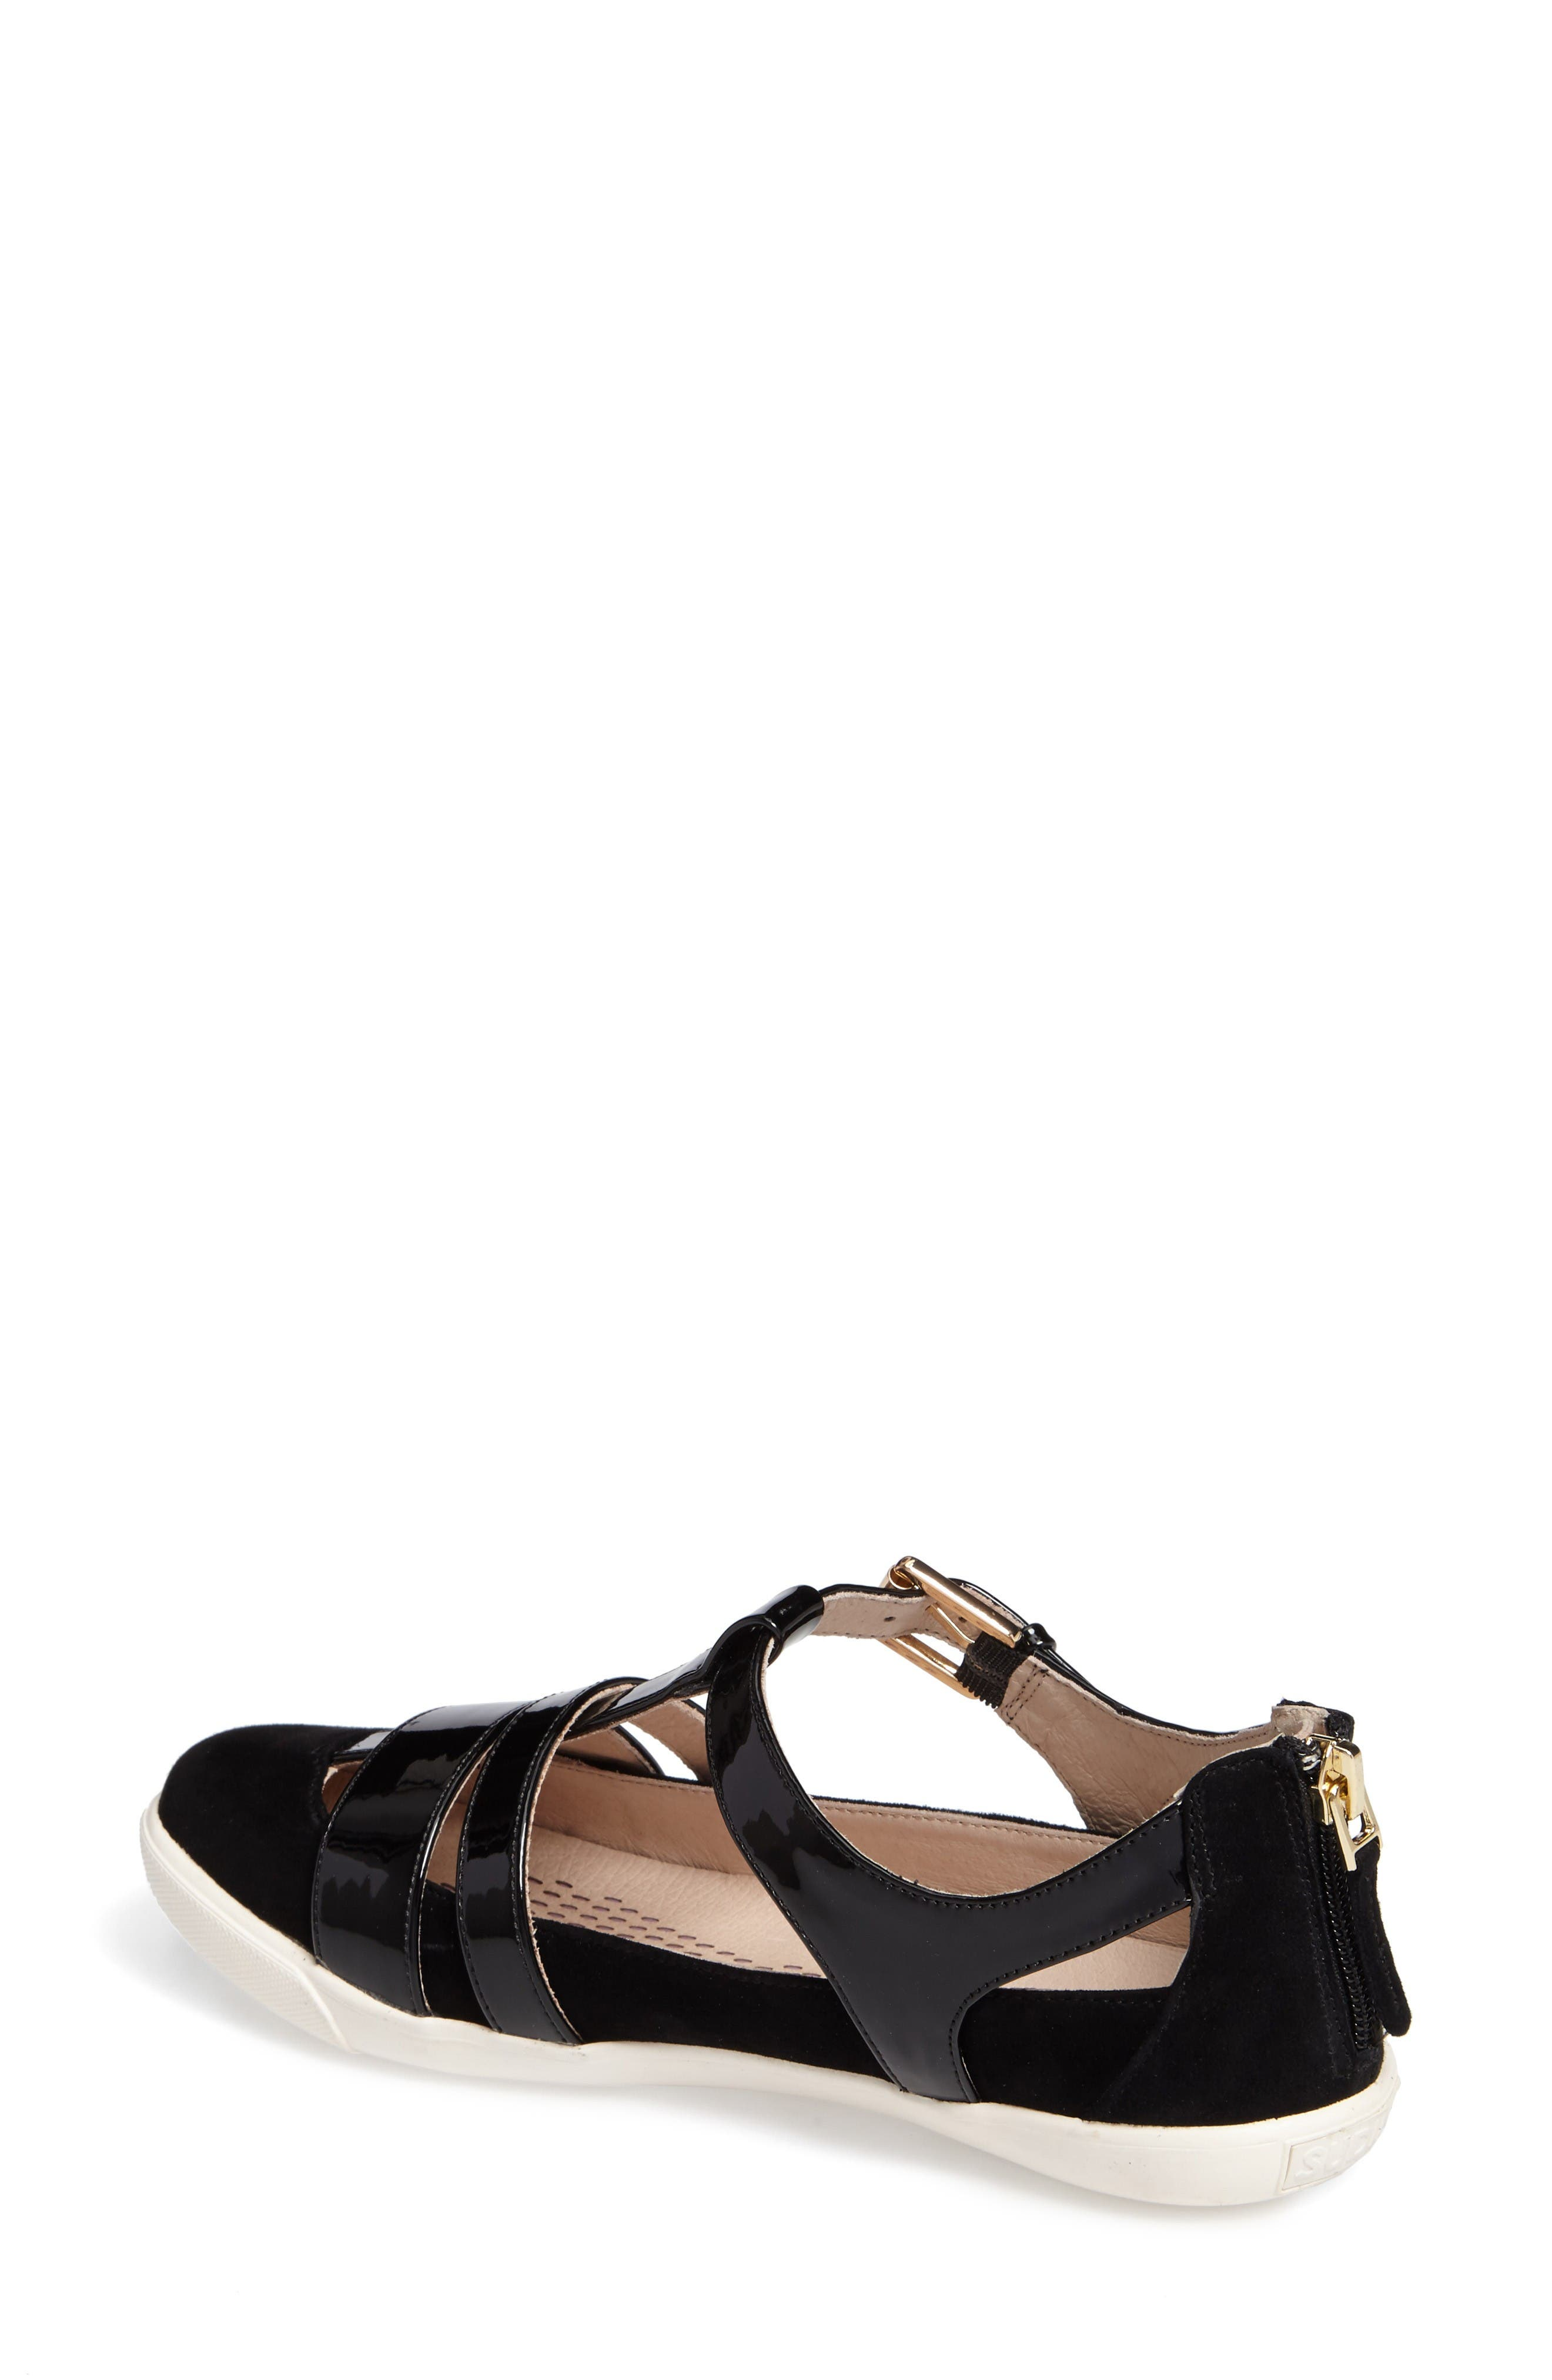 Iona Strappy Sneaker,                             Alternate thumbnail 2, color,                             Black Leather